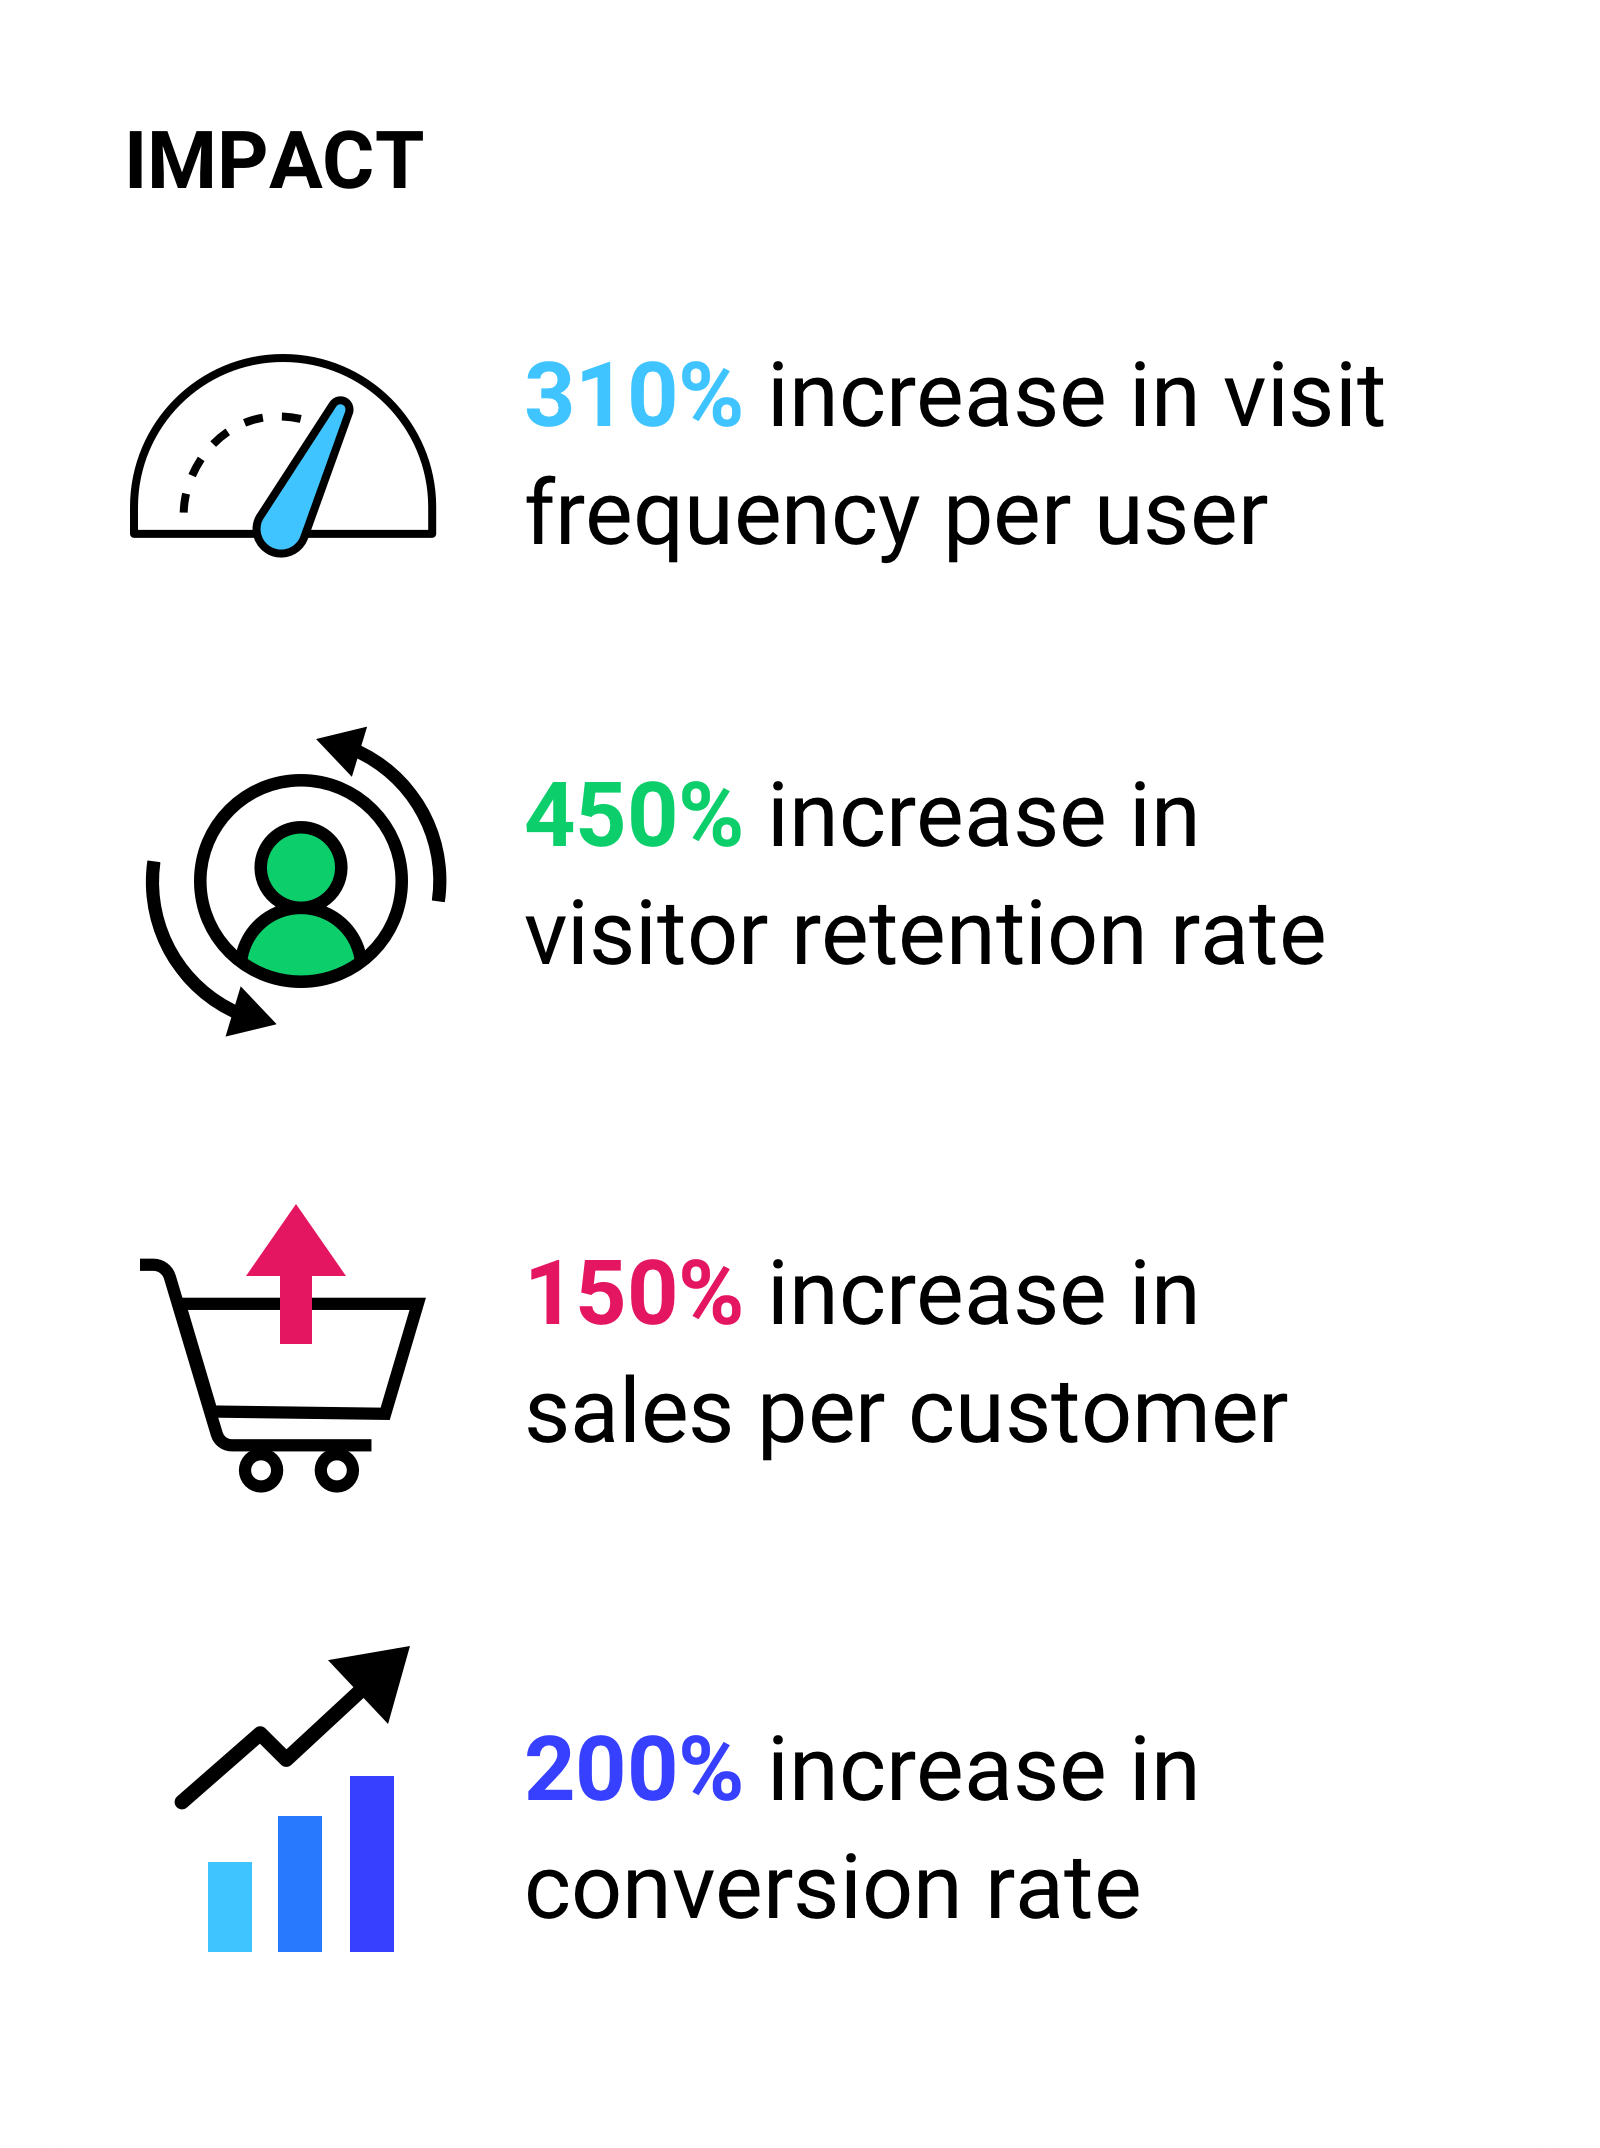 310% increase in visit frequency per user.  450% increase in visitor retention rate. 150% increase in sales per customer.200% increase in conversion rate.